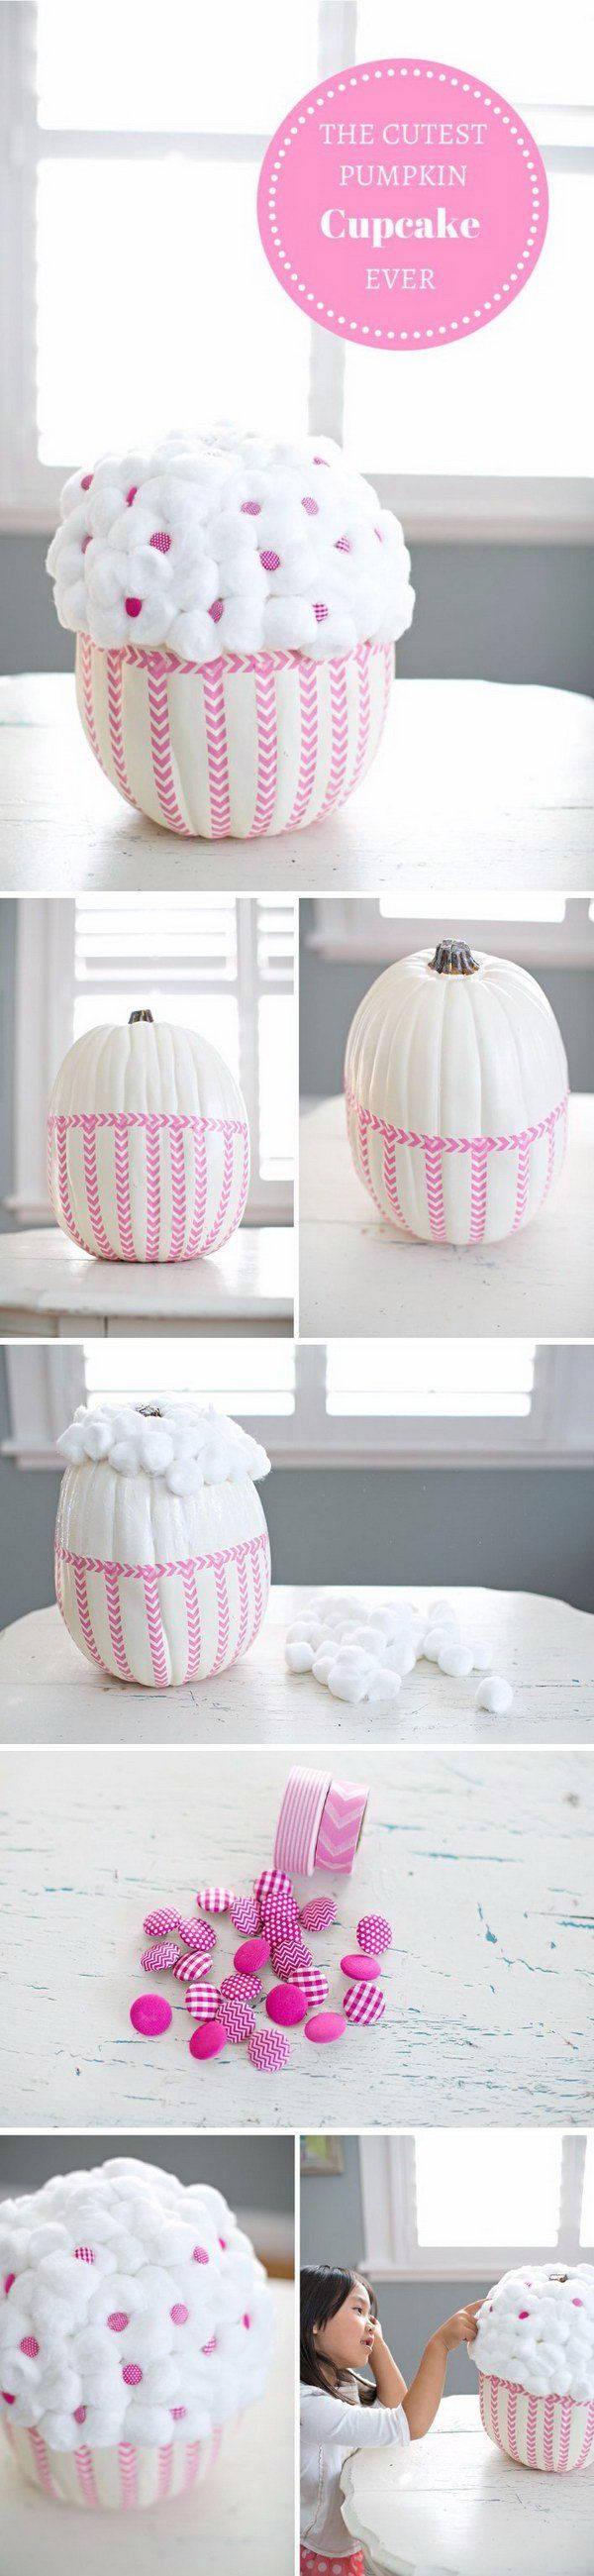 And fashion magic halloween pumpkins carving and decorating ideas - 40 Cool No Carve Pumpkin Decorating Ideas